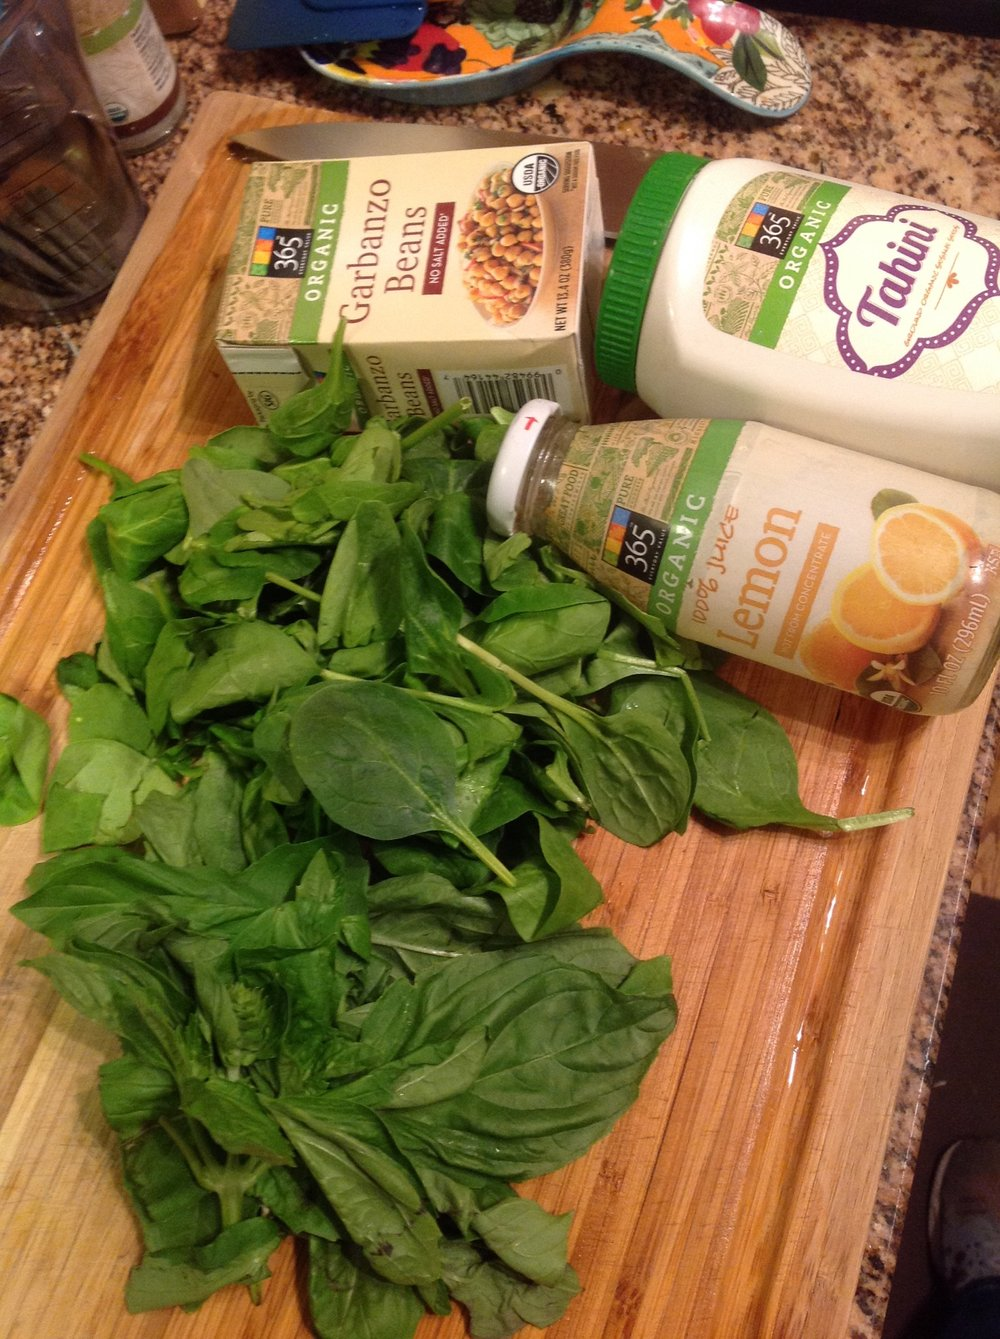 Chef's Plant-Based Tip: Fresh Spinach and Basil add beautiful color and subtle sweetness, something kids particularly enjoy.  Use organic baby spinach for the most healthy flavor in this vegan, oil-free recipe